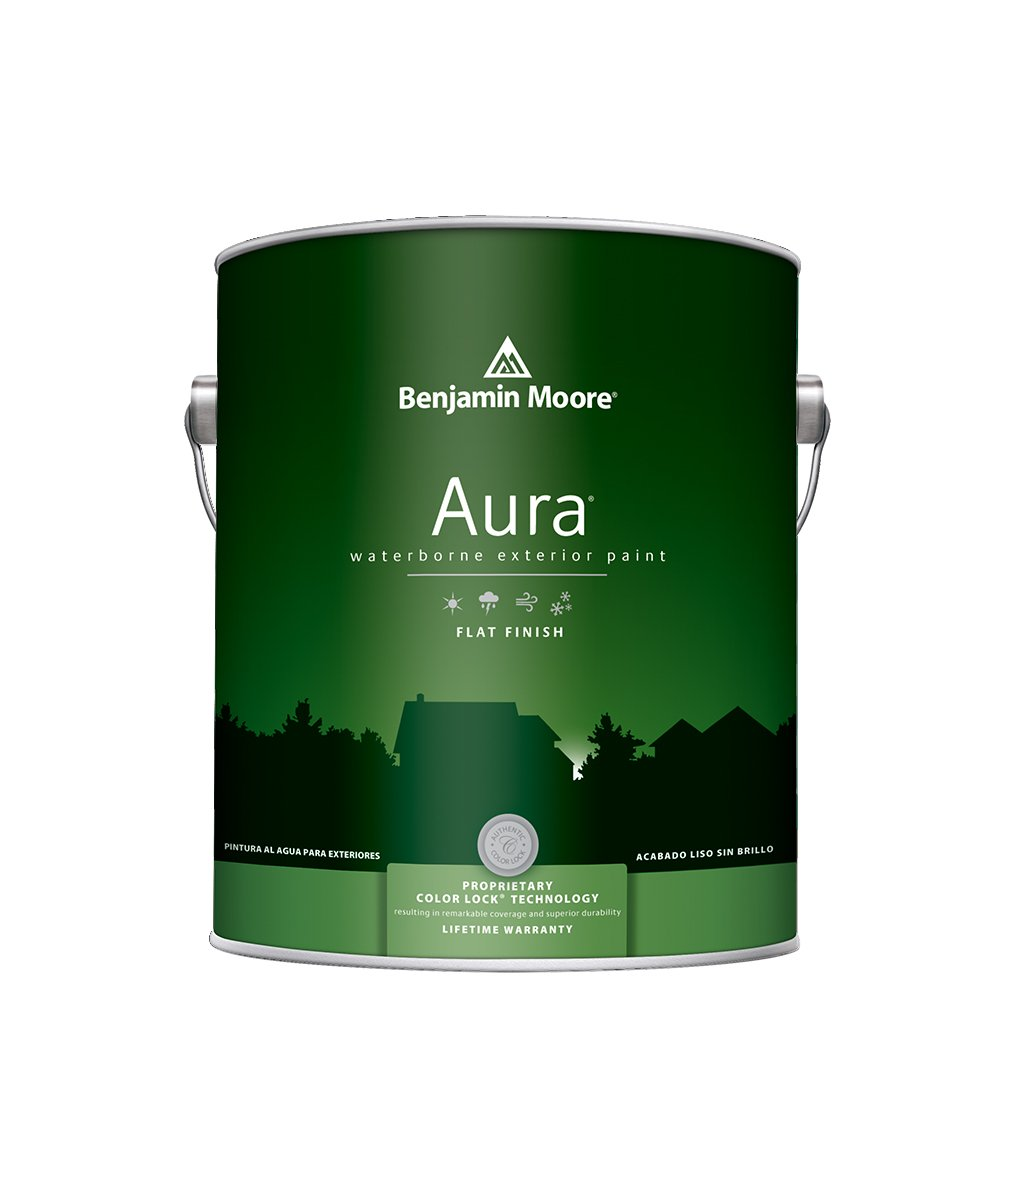 Benjamin Moore Aura Exterior Flat Paint available at Creative Paint in San Francisco, South Bay & East Bay.